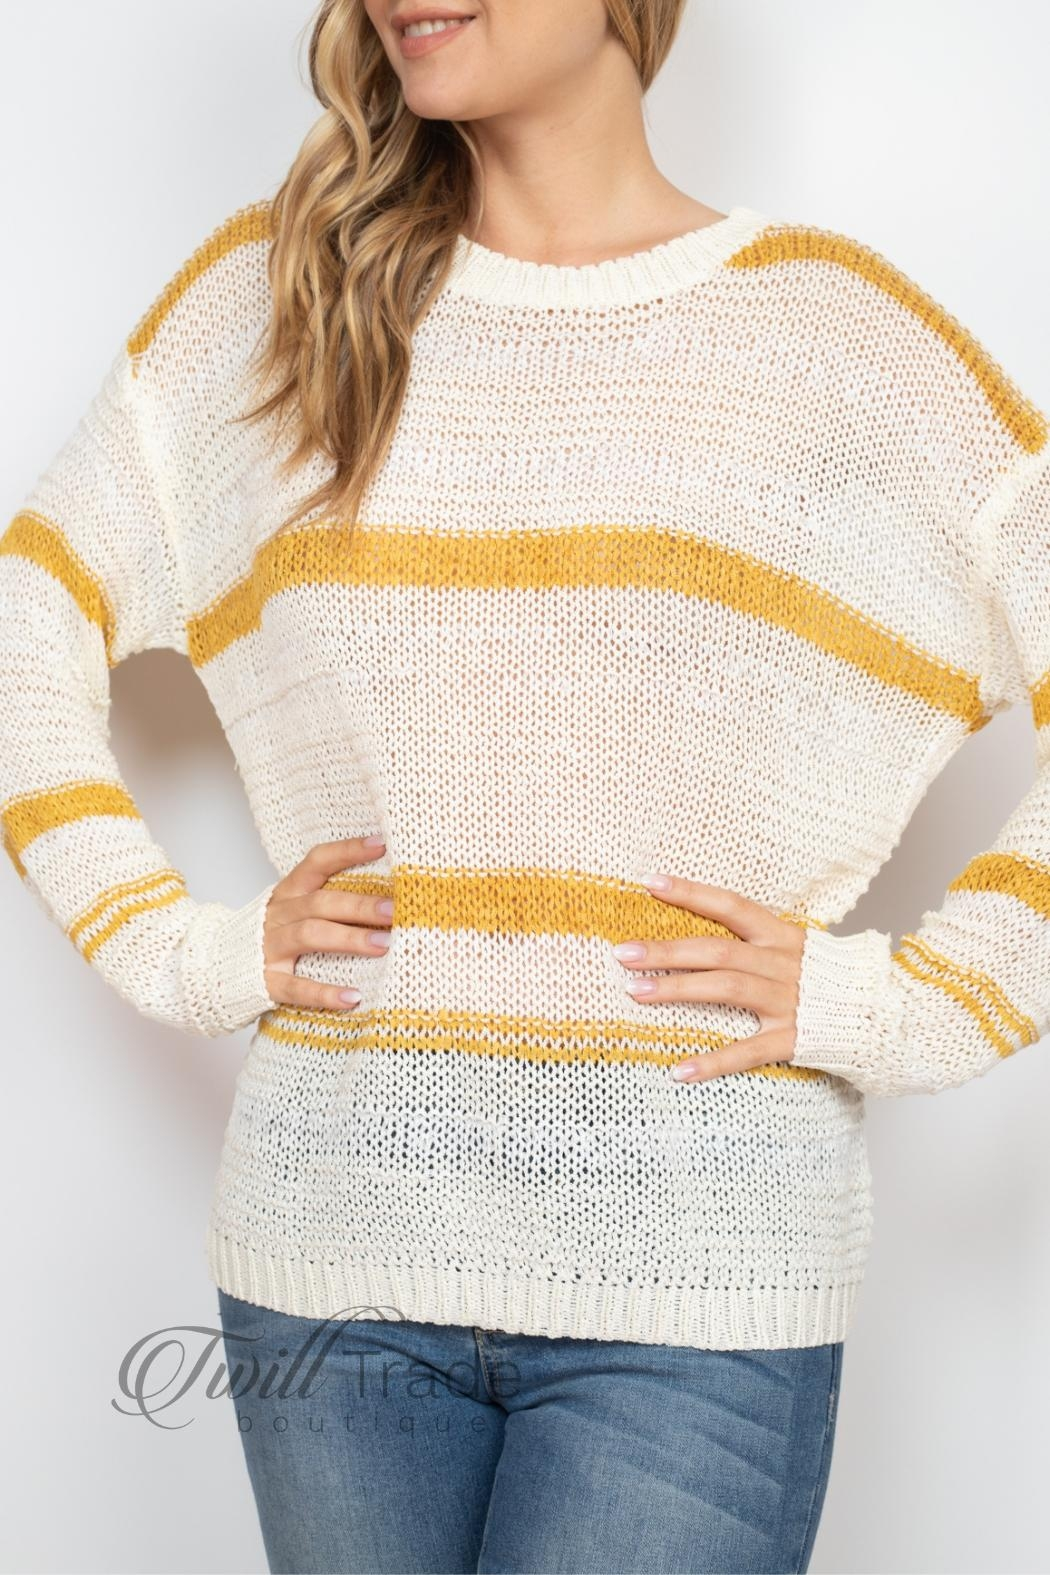 Unbranded Ivory Mustard Sweater - Side Cropped Image